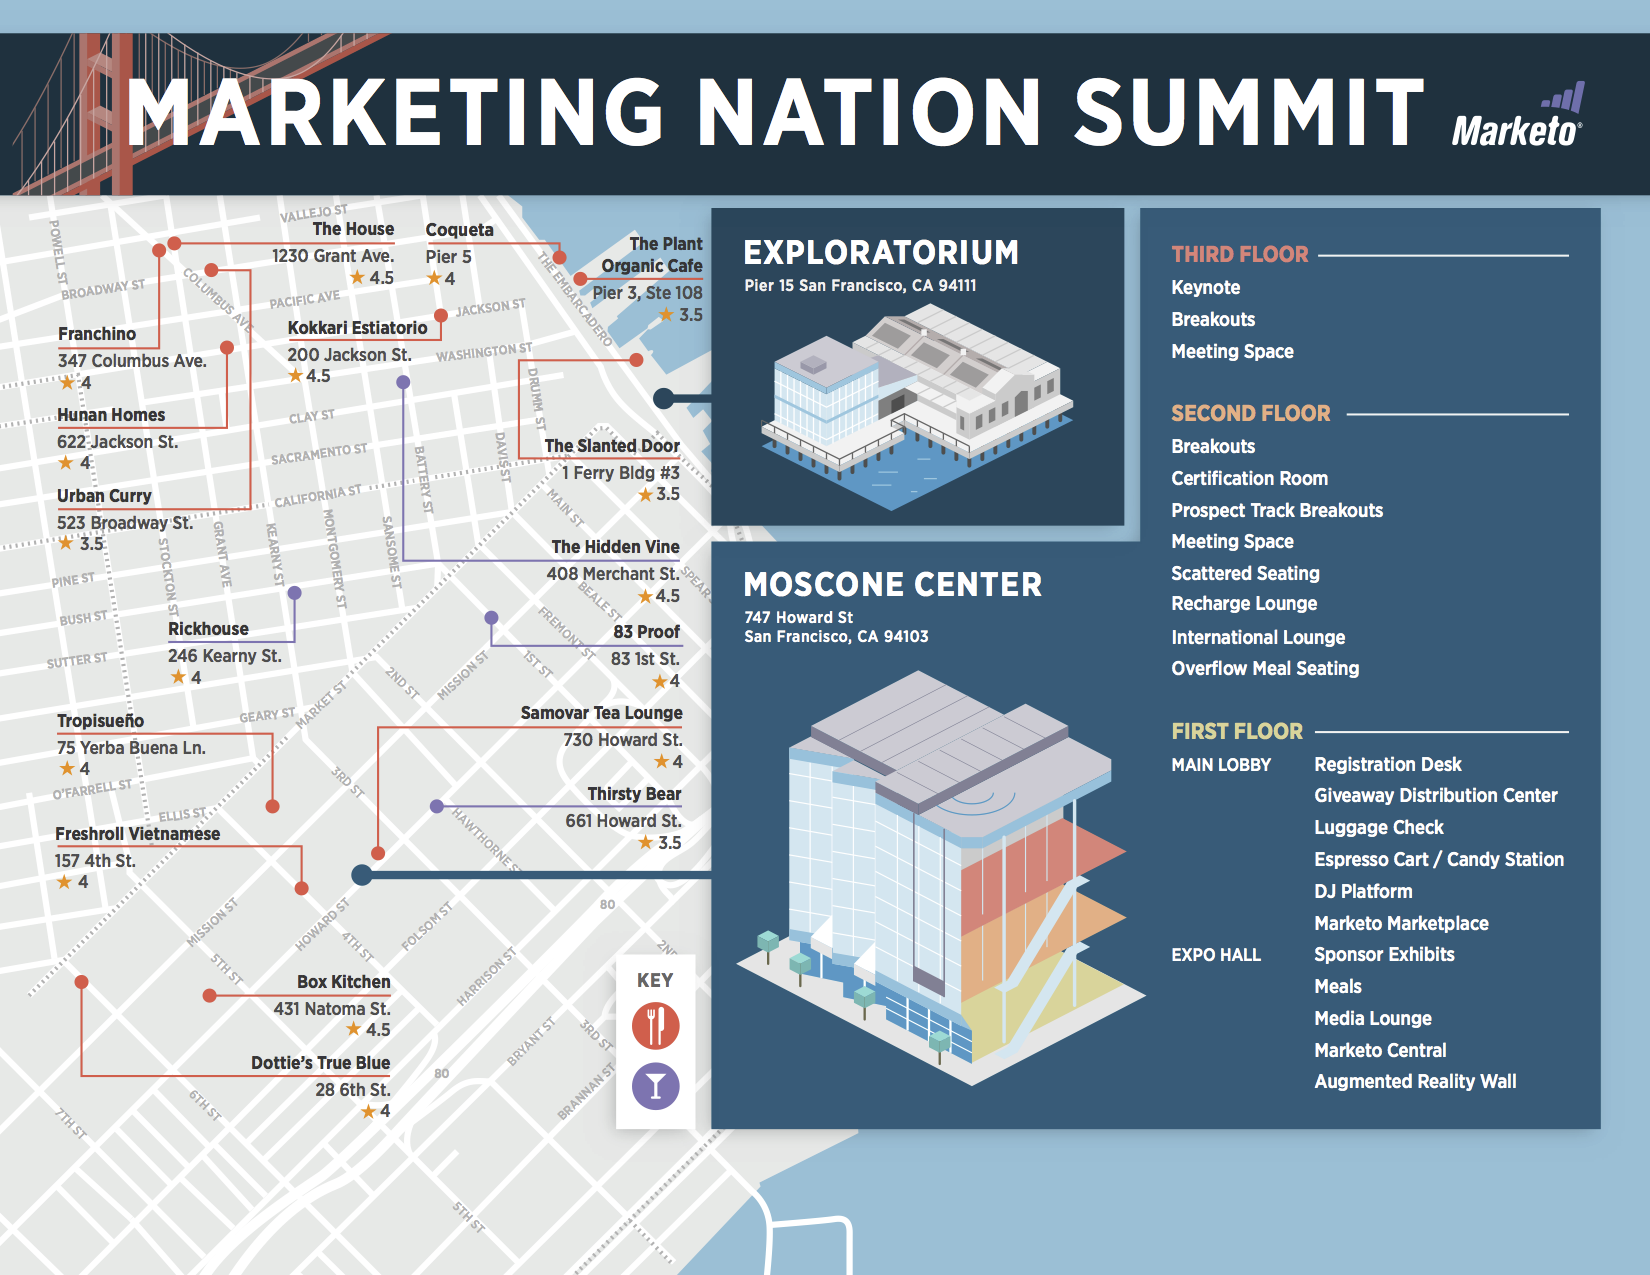 Marketos Marketing Nation Summit Map Infographic